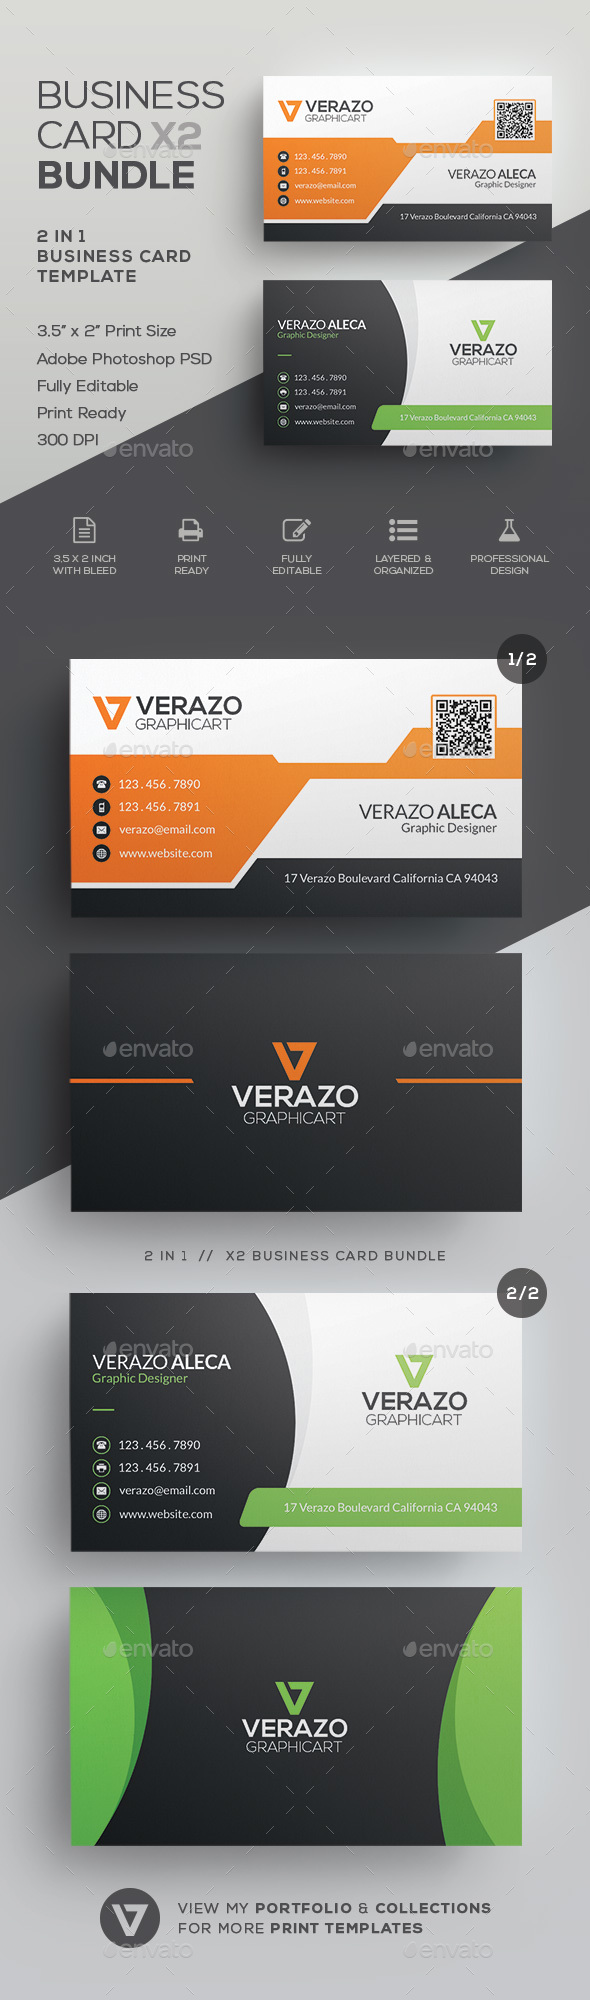 Business Card Bundle By Verazo GraphicRiver - 35 x2 business card template